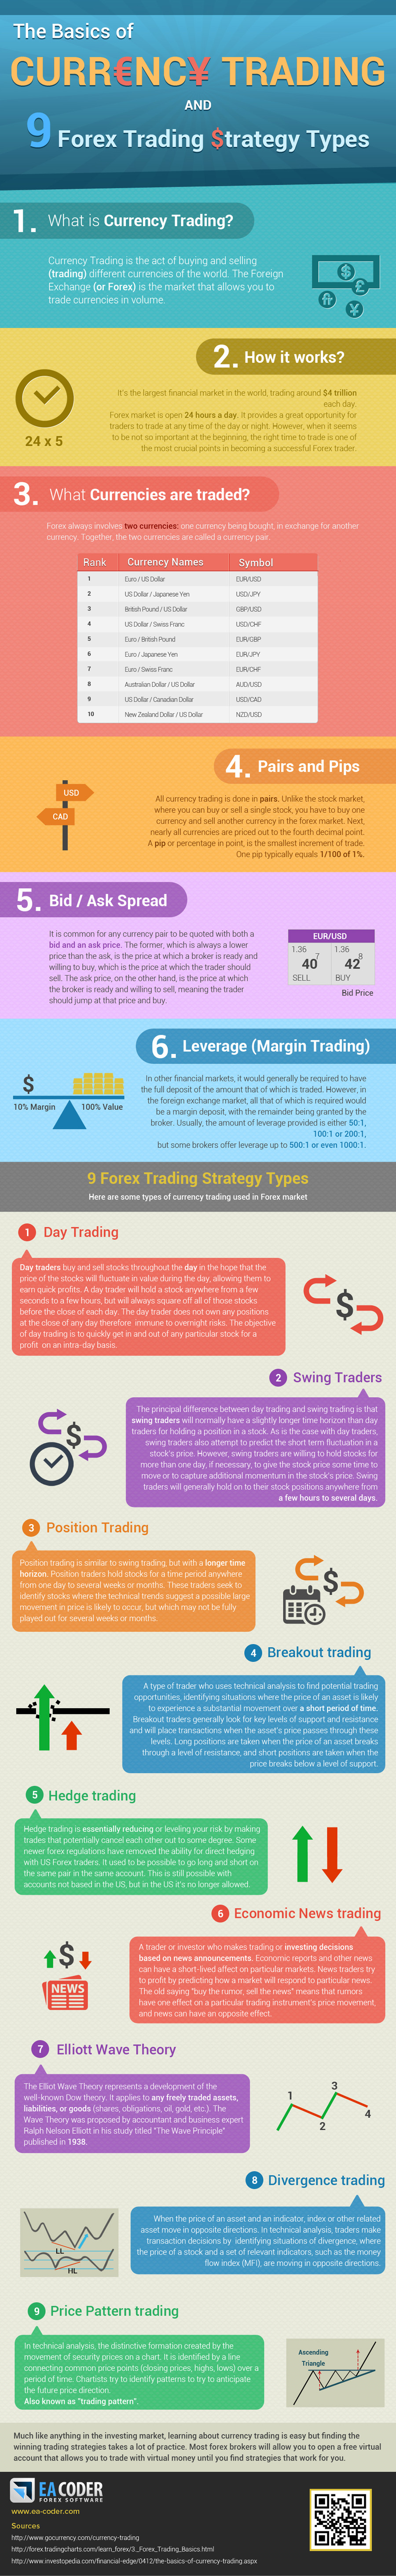 Infographic currency trading basics an 9 forex strategy types